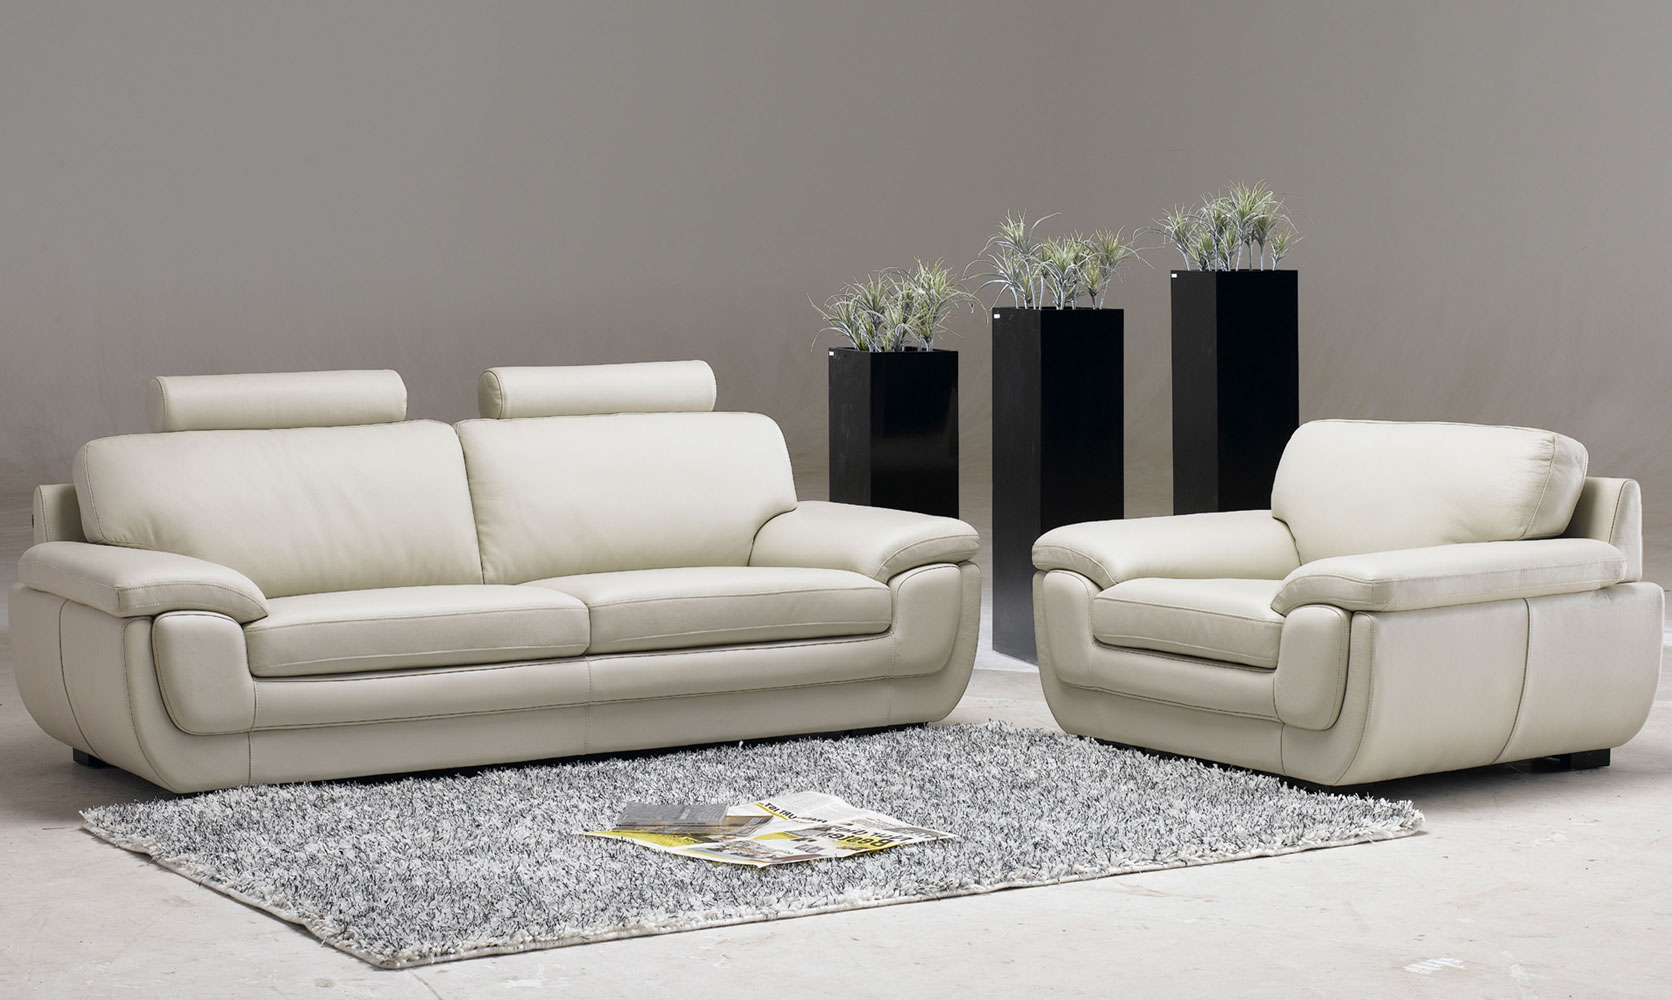 Comfortable chairs for living room - White Chairs For Living Room With Headrest Feature Grey Wool Area Rug Elegant Modern Black Plant